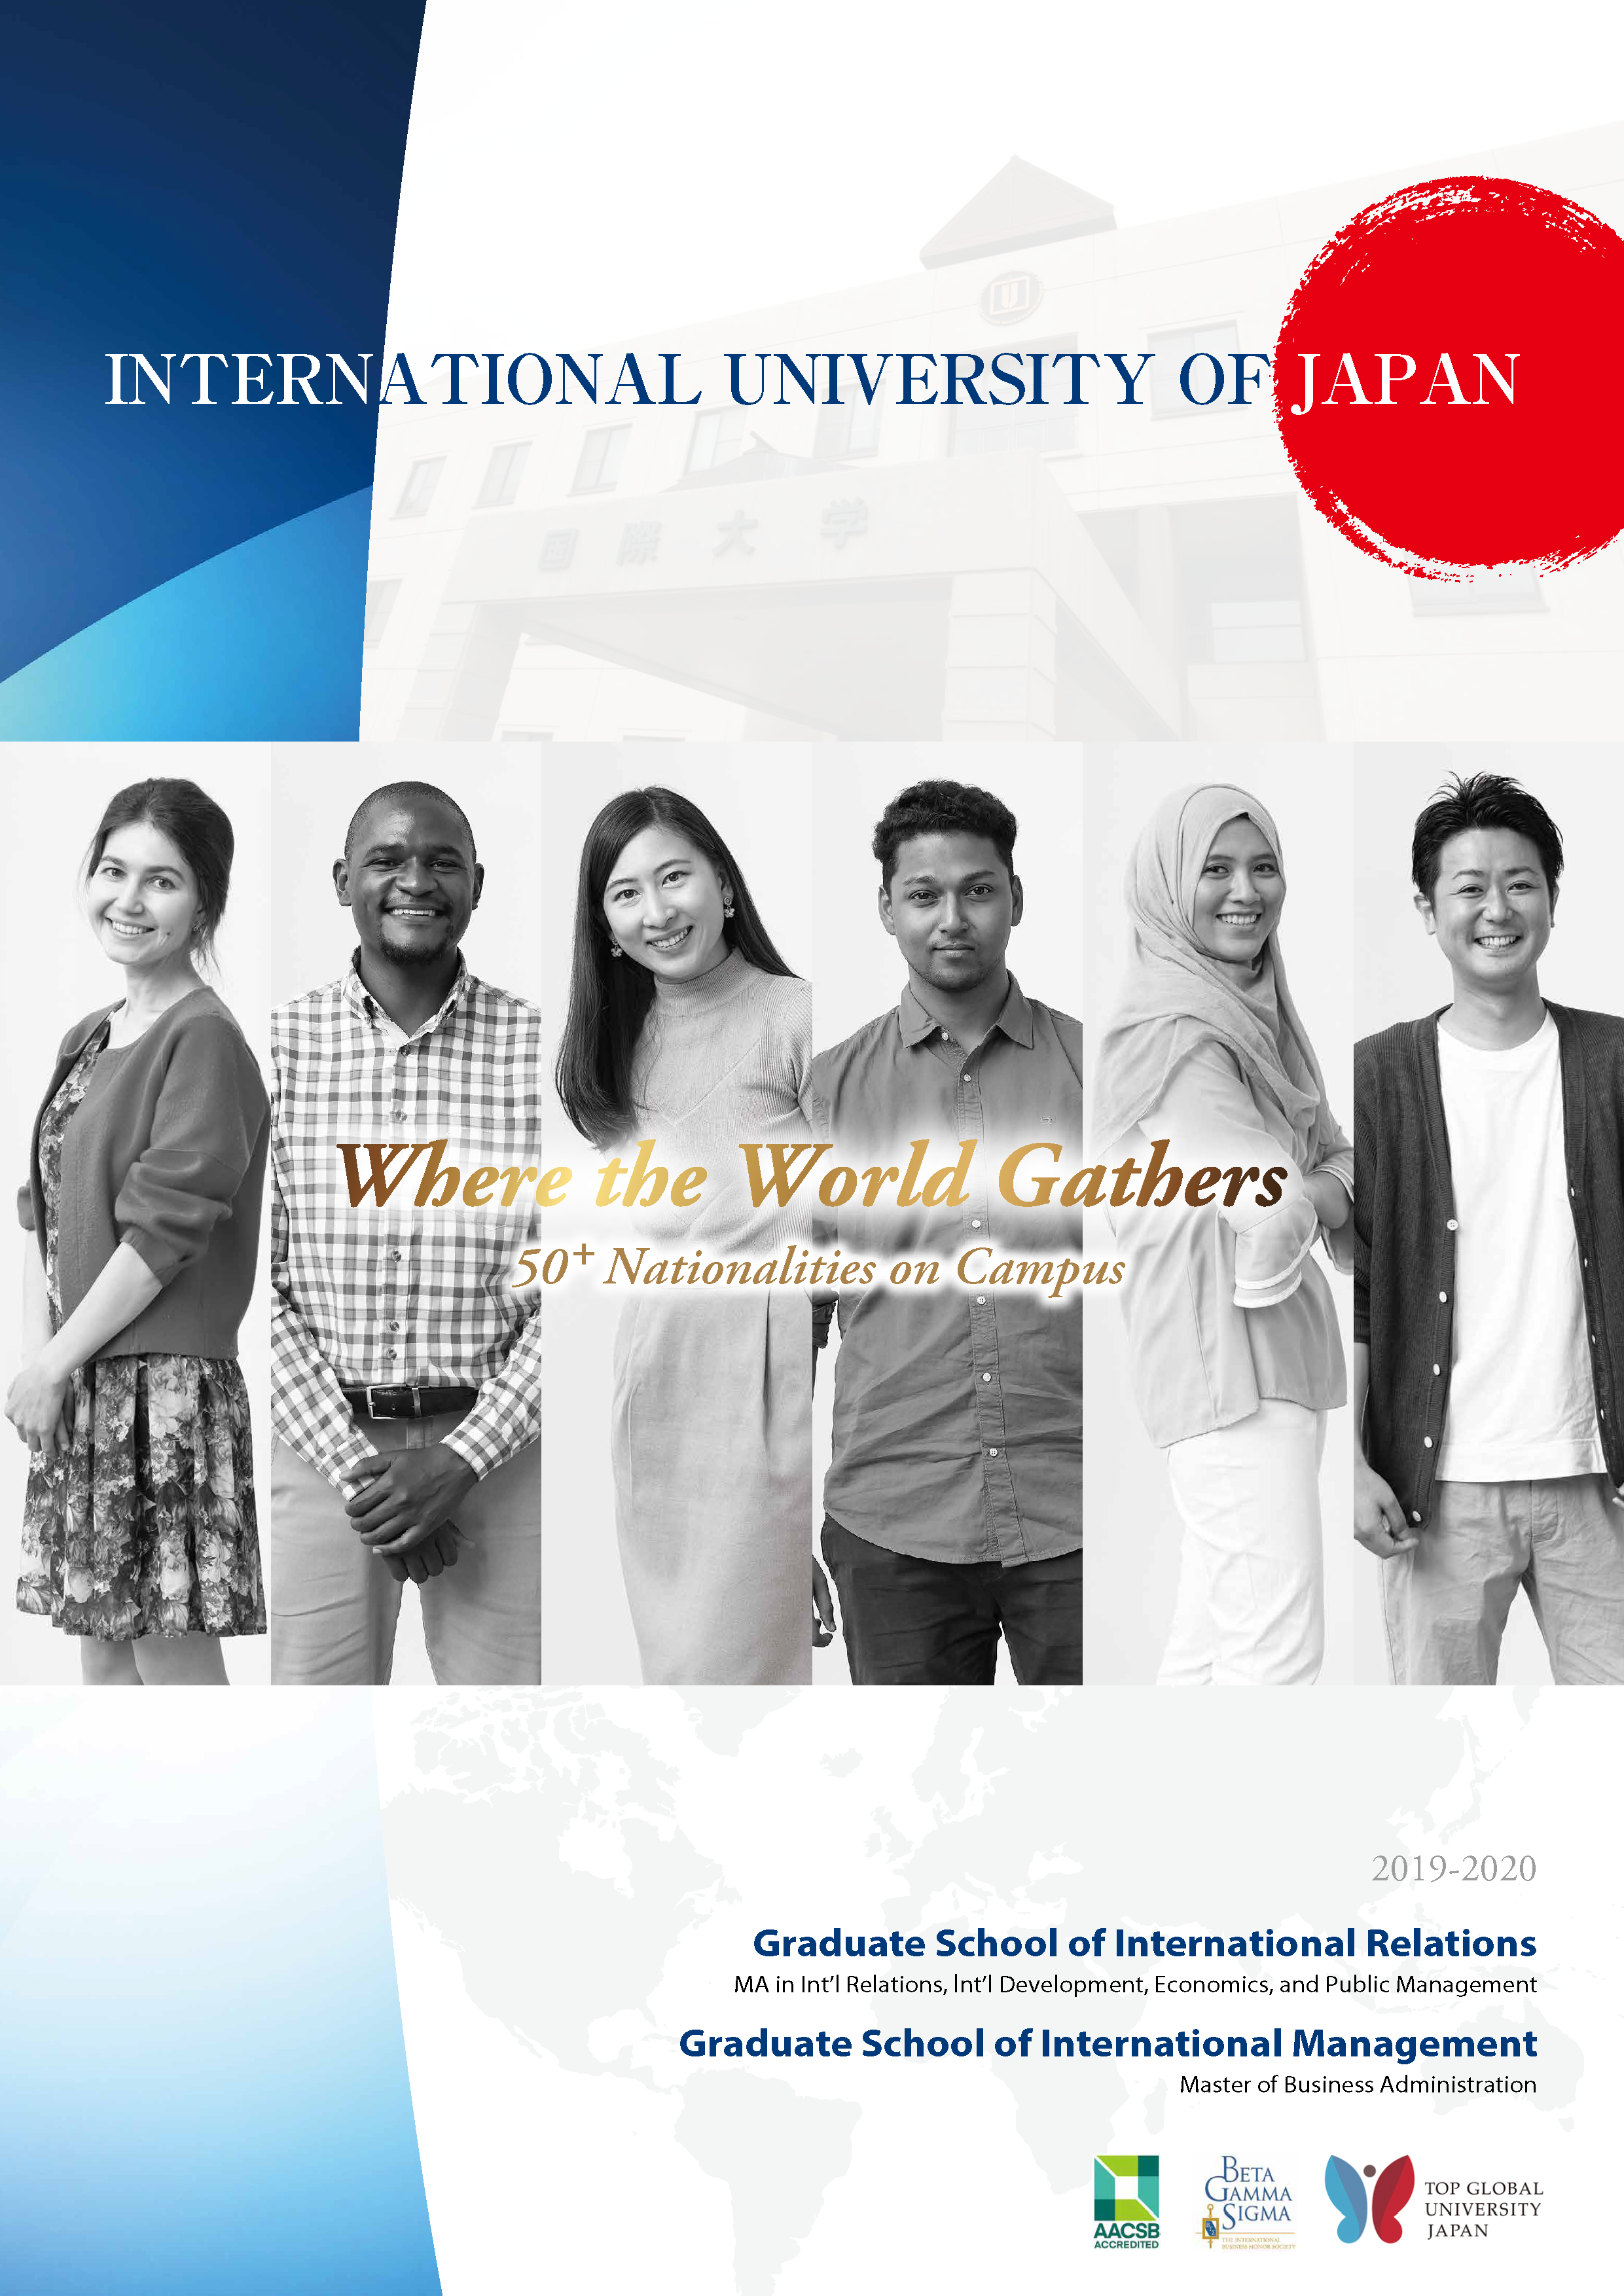 The New Iuj Brochure Is Now Available On Our Website International University Of Japan